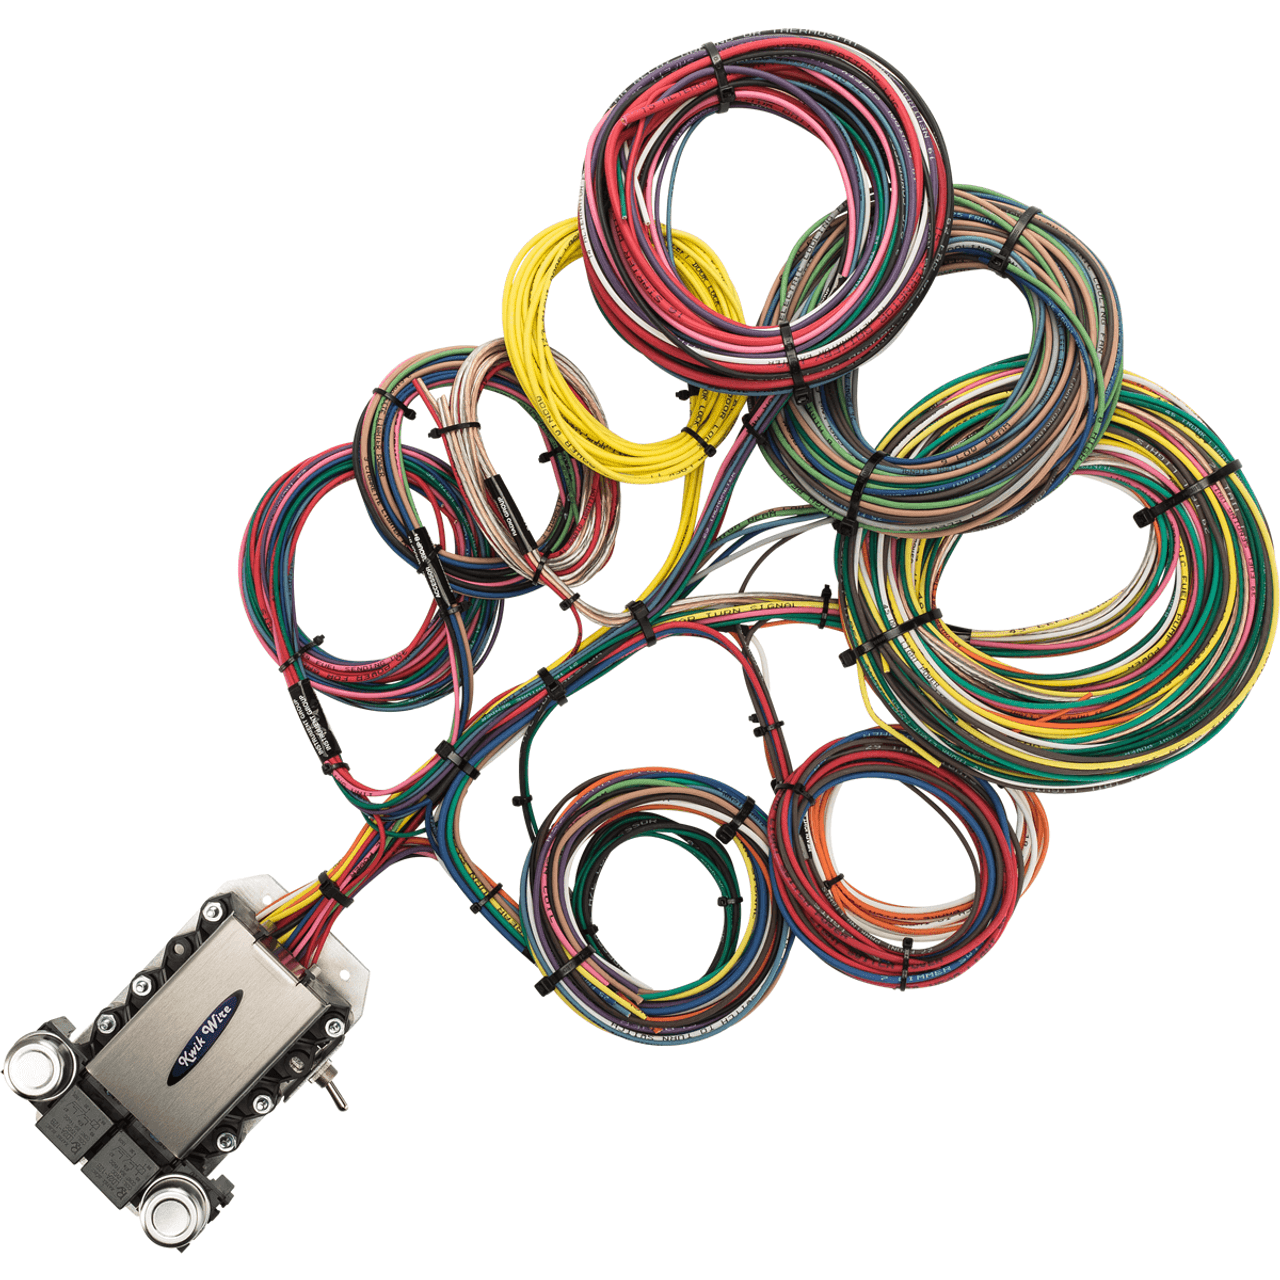 small resolution of wiring harness design jobs in usa wiring diagram featuredwiring harness jobs in usa wiring diagram today